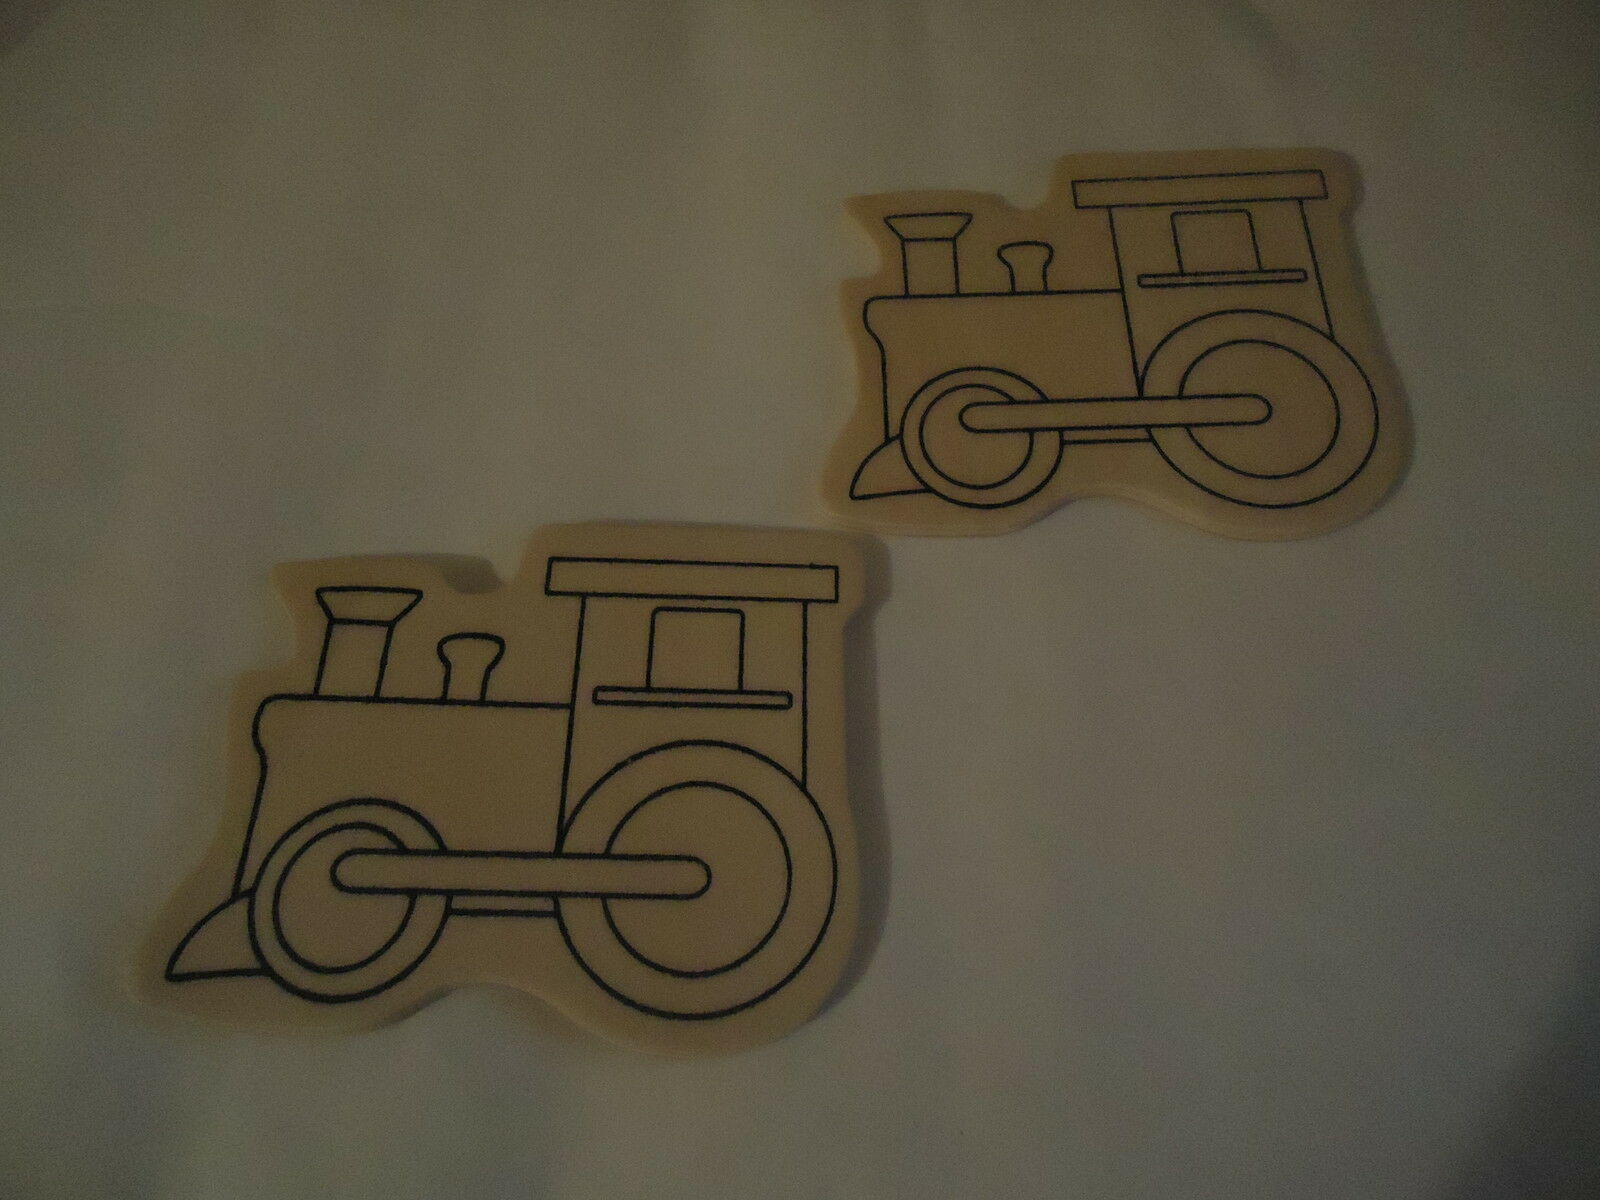 locomotive bois contreplaque a peindre lot de 2 eur 1 19 picclick fr. Black Bedroom Furniture Sets. Home Design Ideas